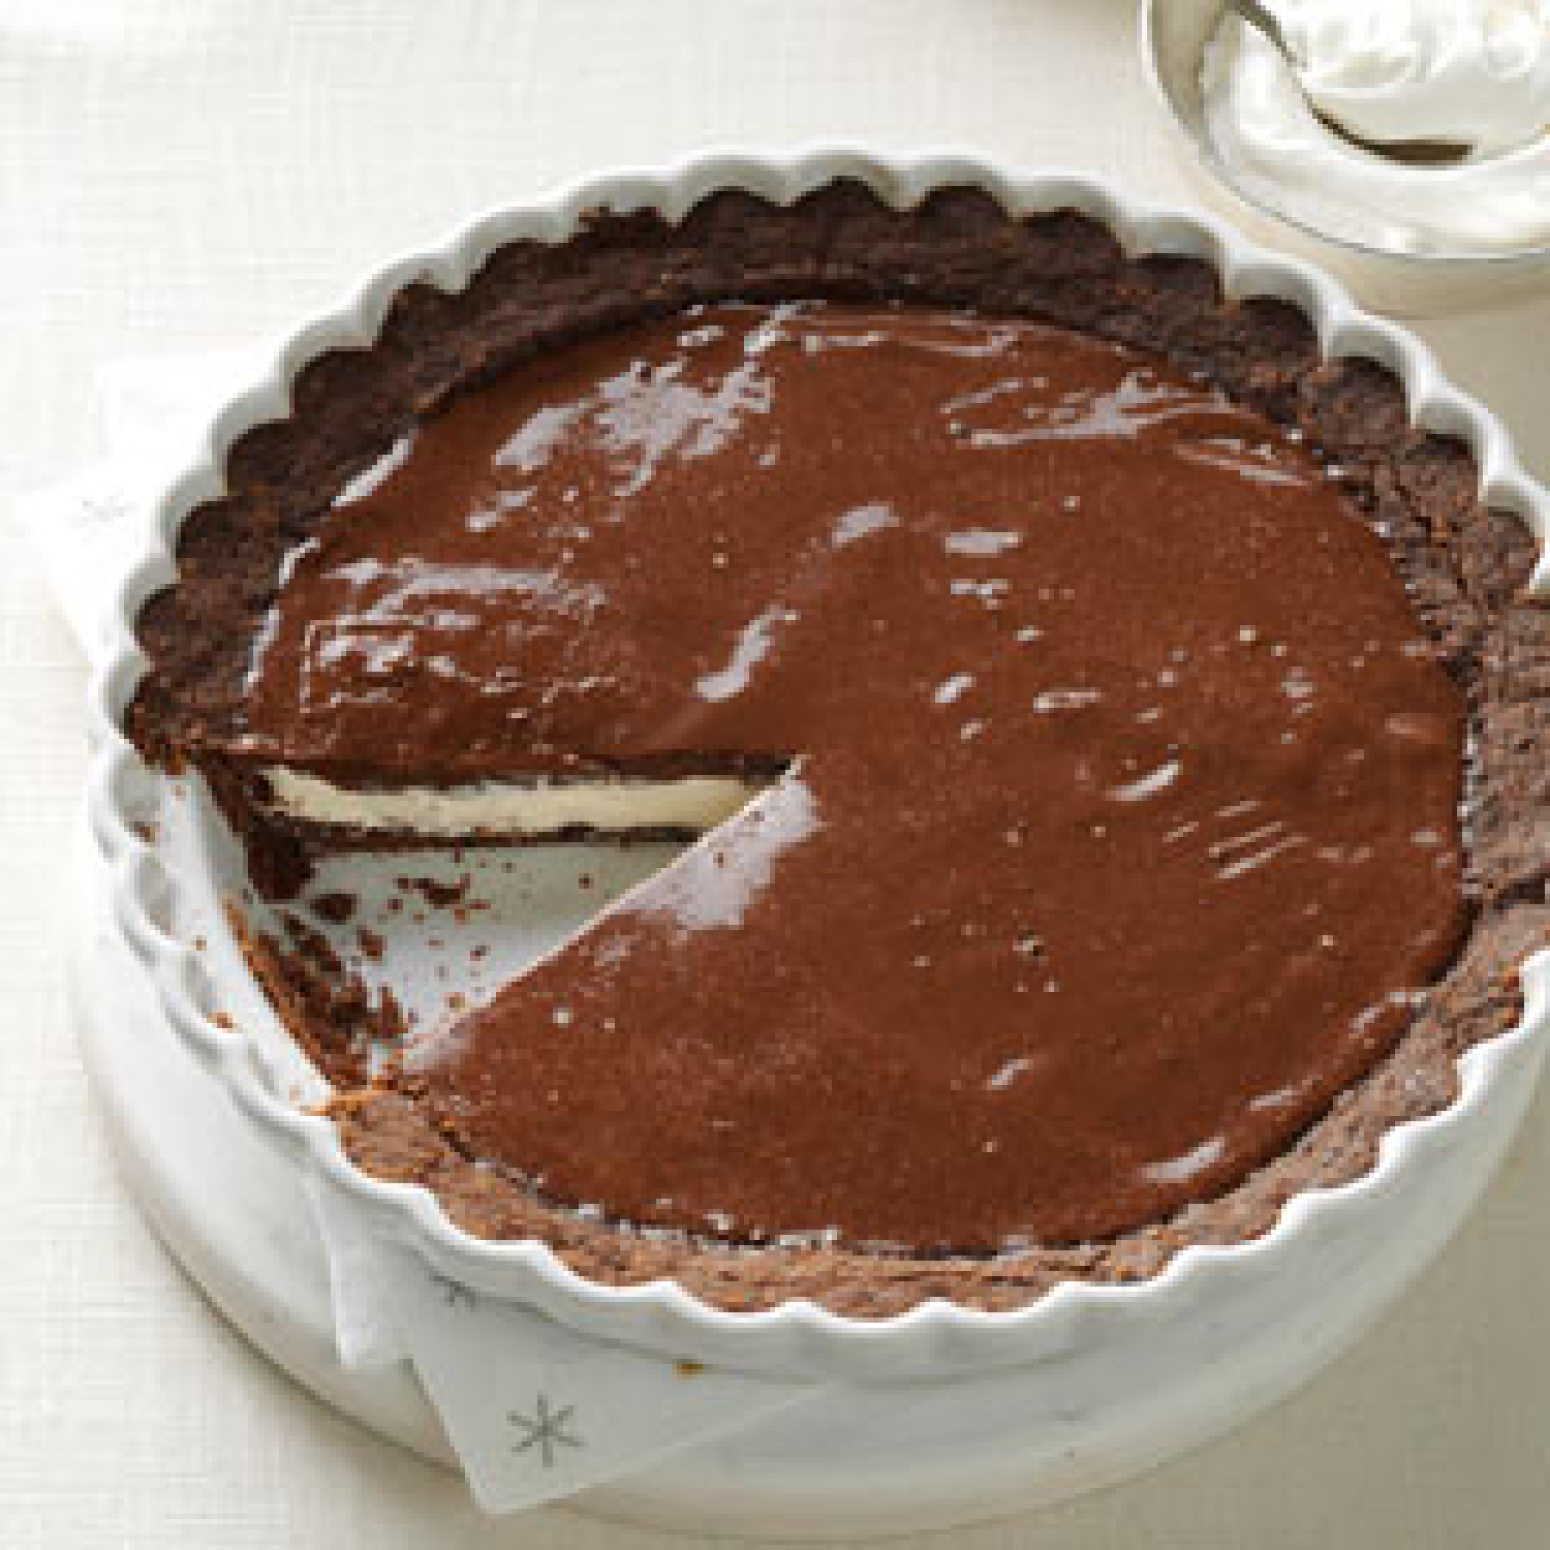 Chocolate Eggnog Pie Recipe | Just A Pinch Recipes